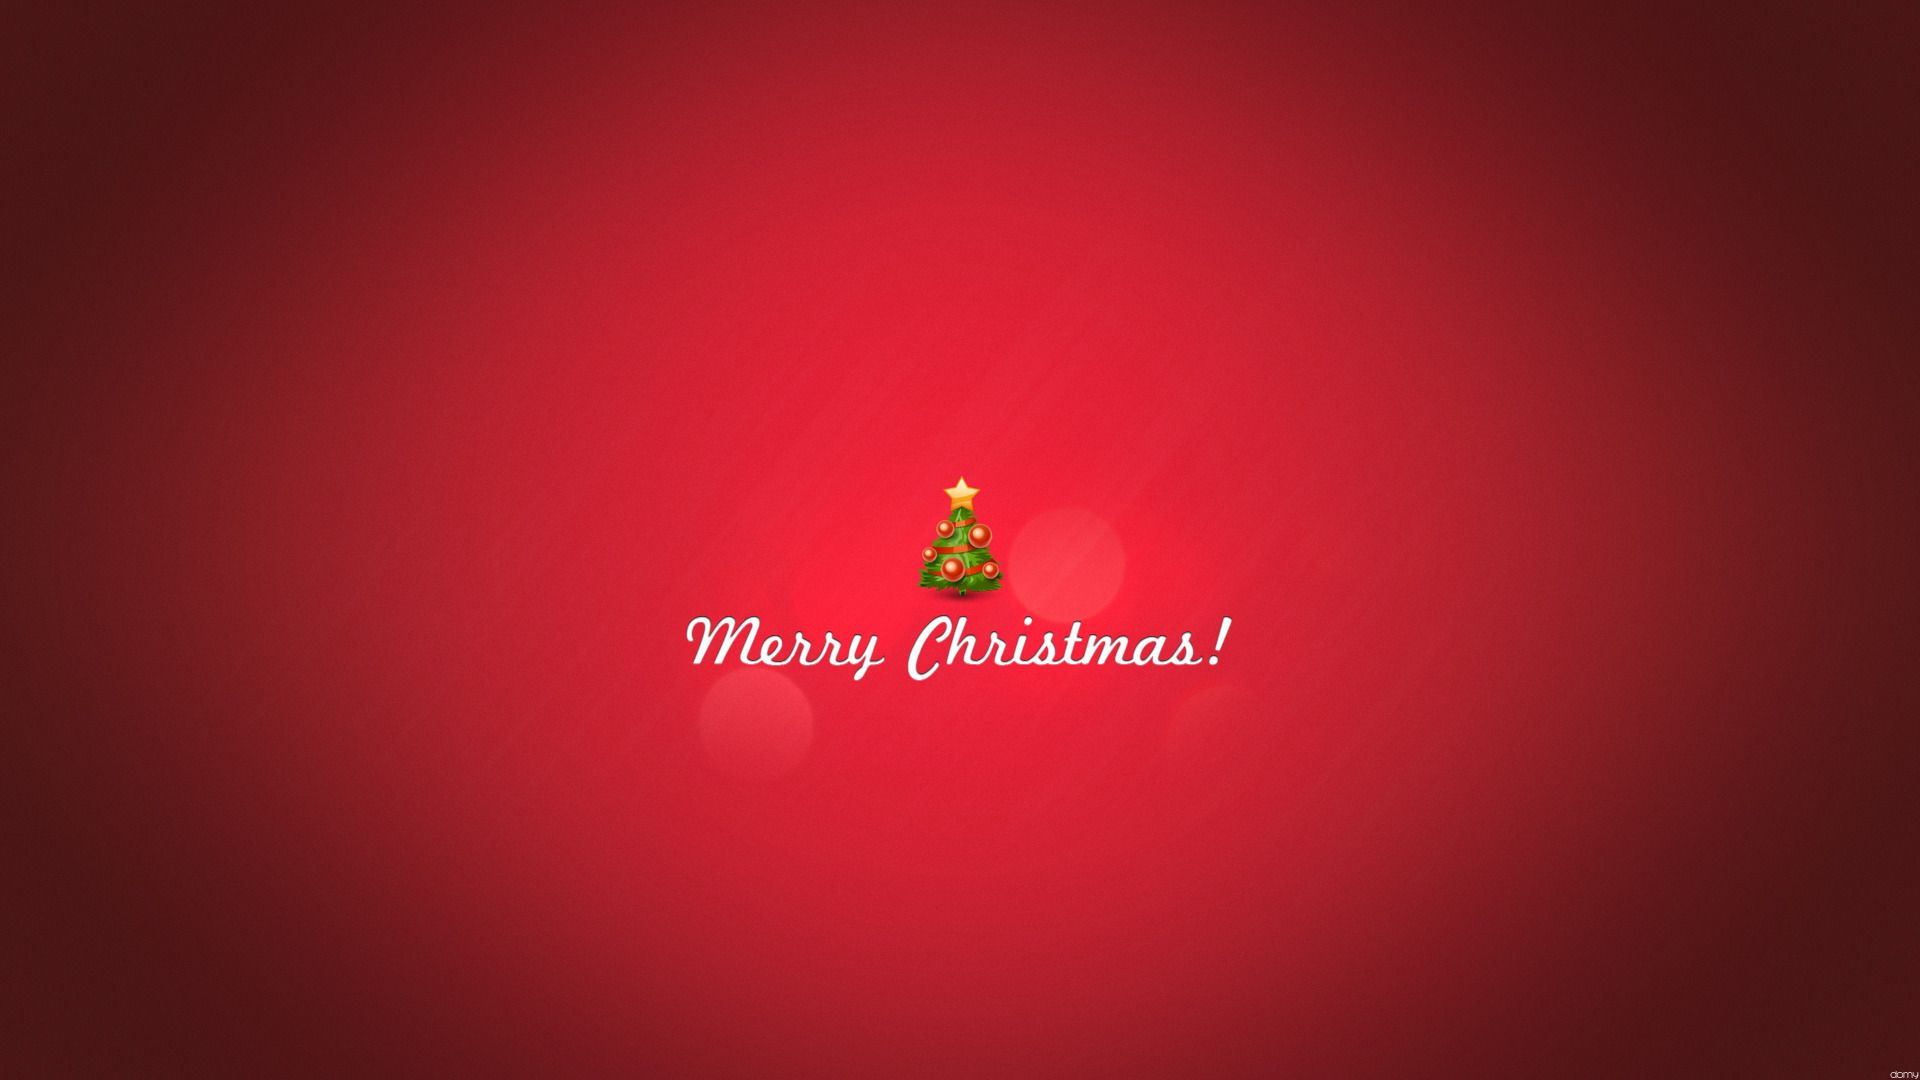 40 Minimalist Christmas Wallpapers For Desktop And Iphone